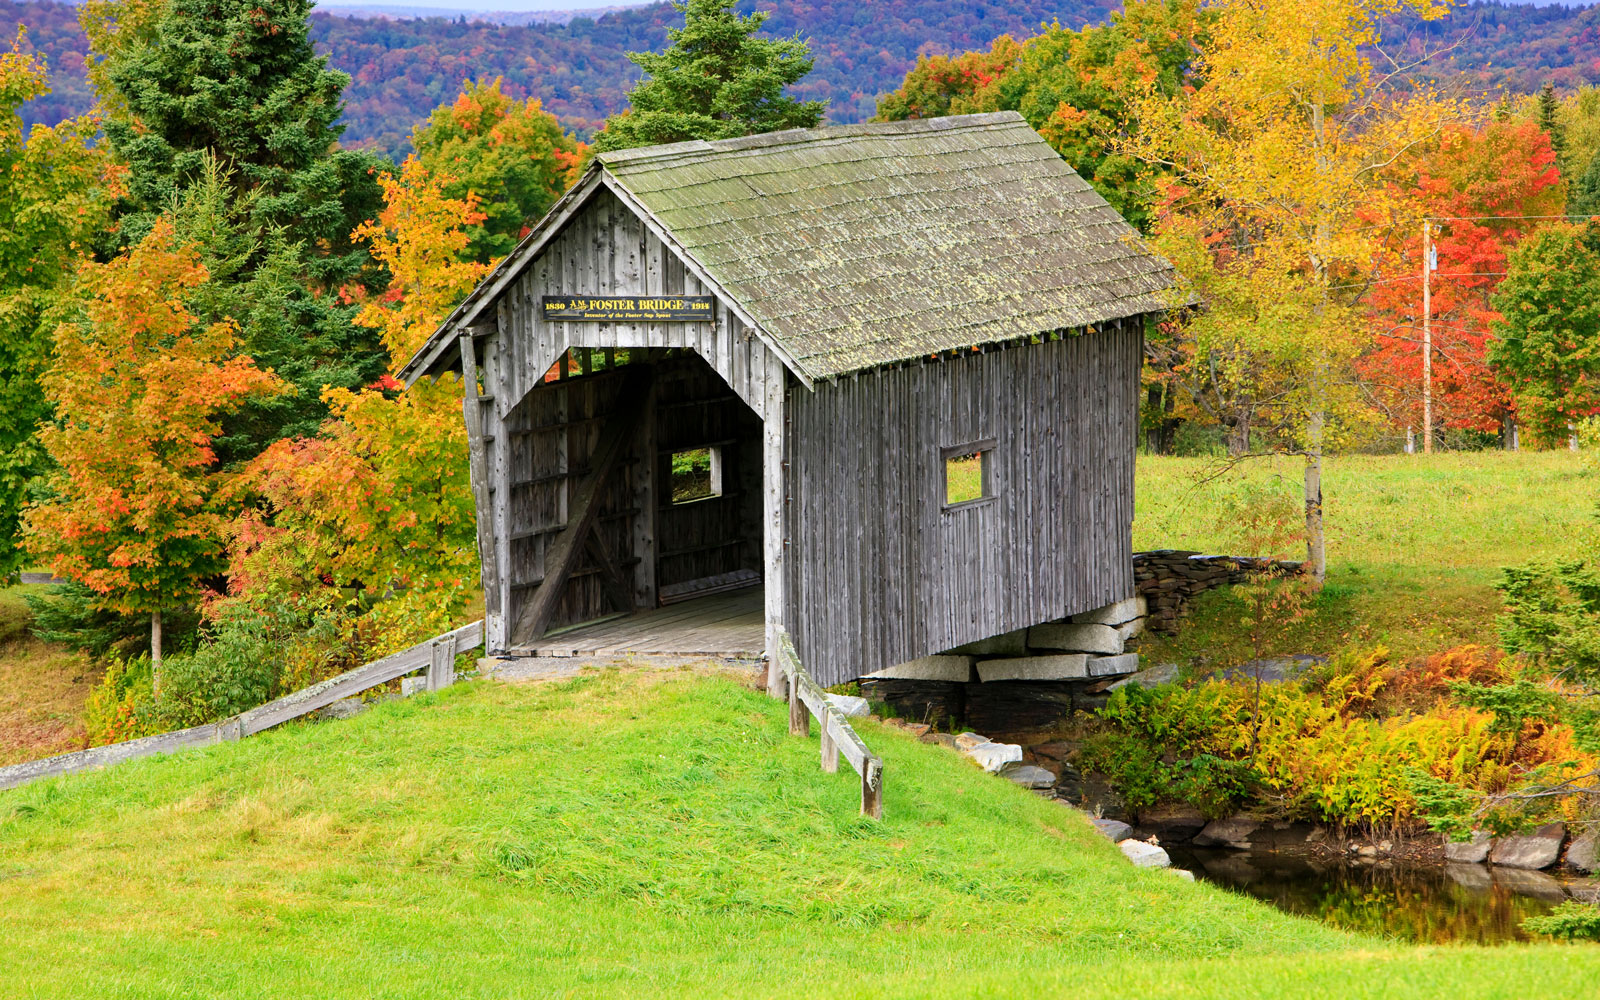 America's Most Beautiful Covered Bridges: A. M. Foster